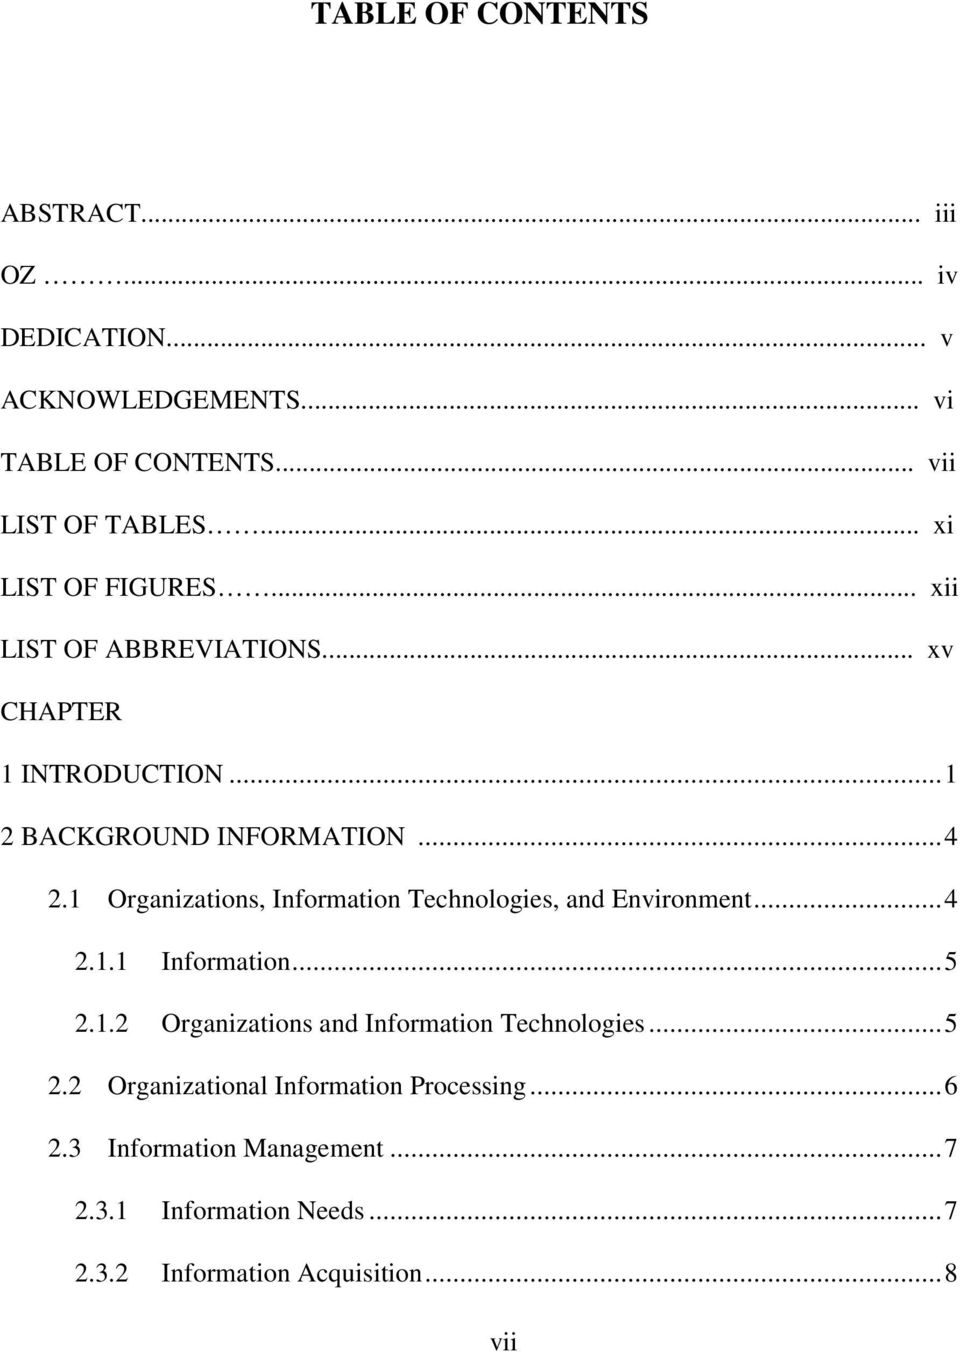 1 Organizations, Information Technologies, and Environment...4 2.1.1 Information...5 2.1.2 Organizations and Information Technologies.